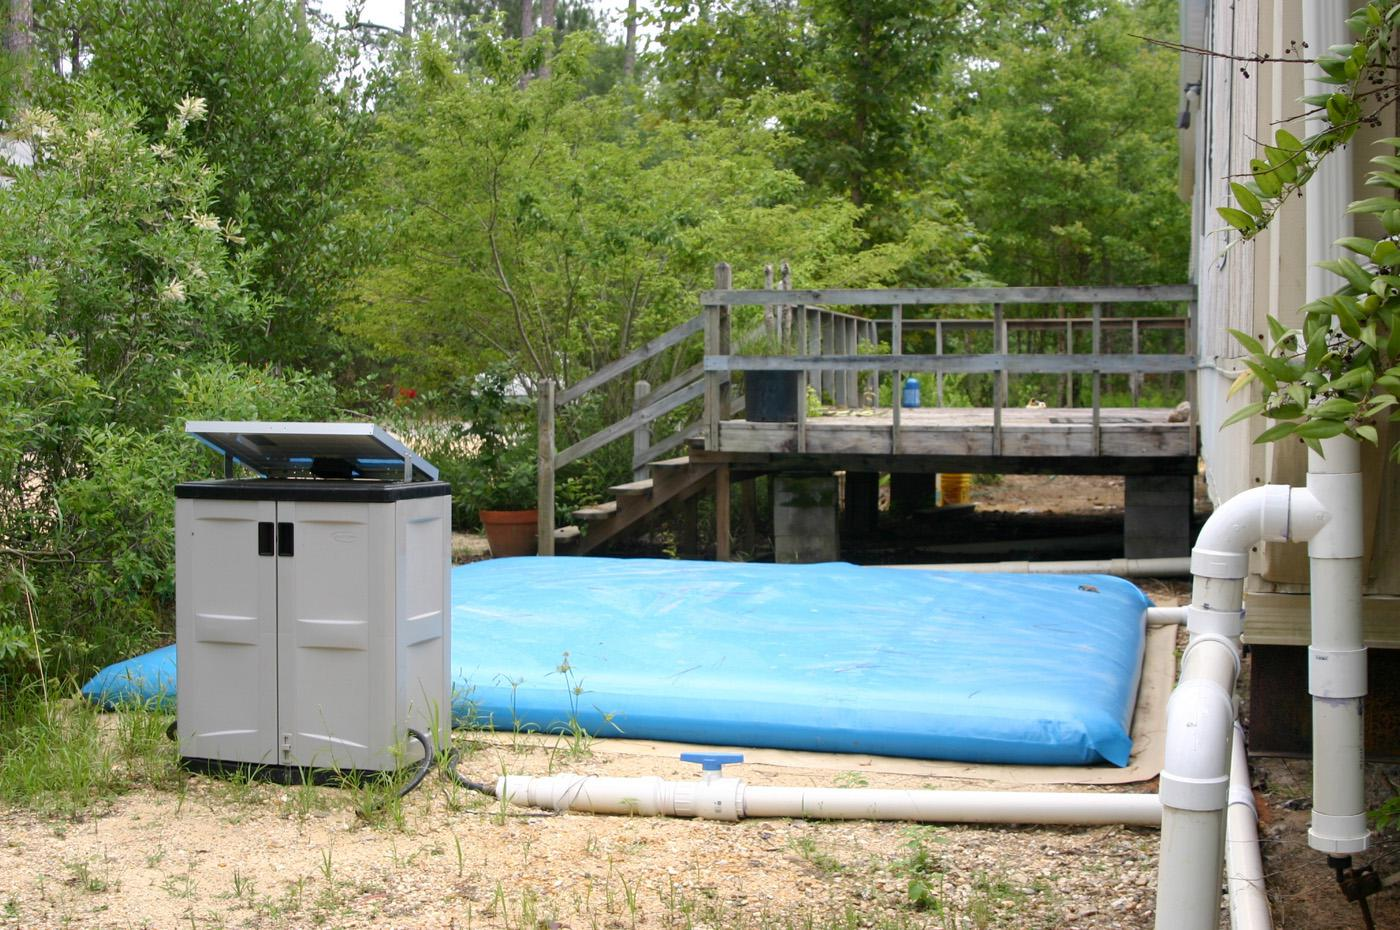 A rainwater harvesting system donated to the Crosby arboretum by Avon Engineered Fabrications collects run-off in a flexible storage tank. (Submitted photo.)